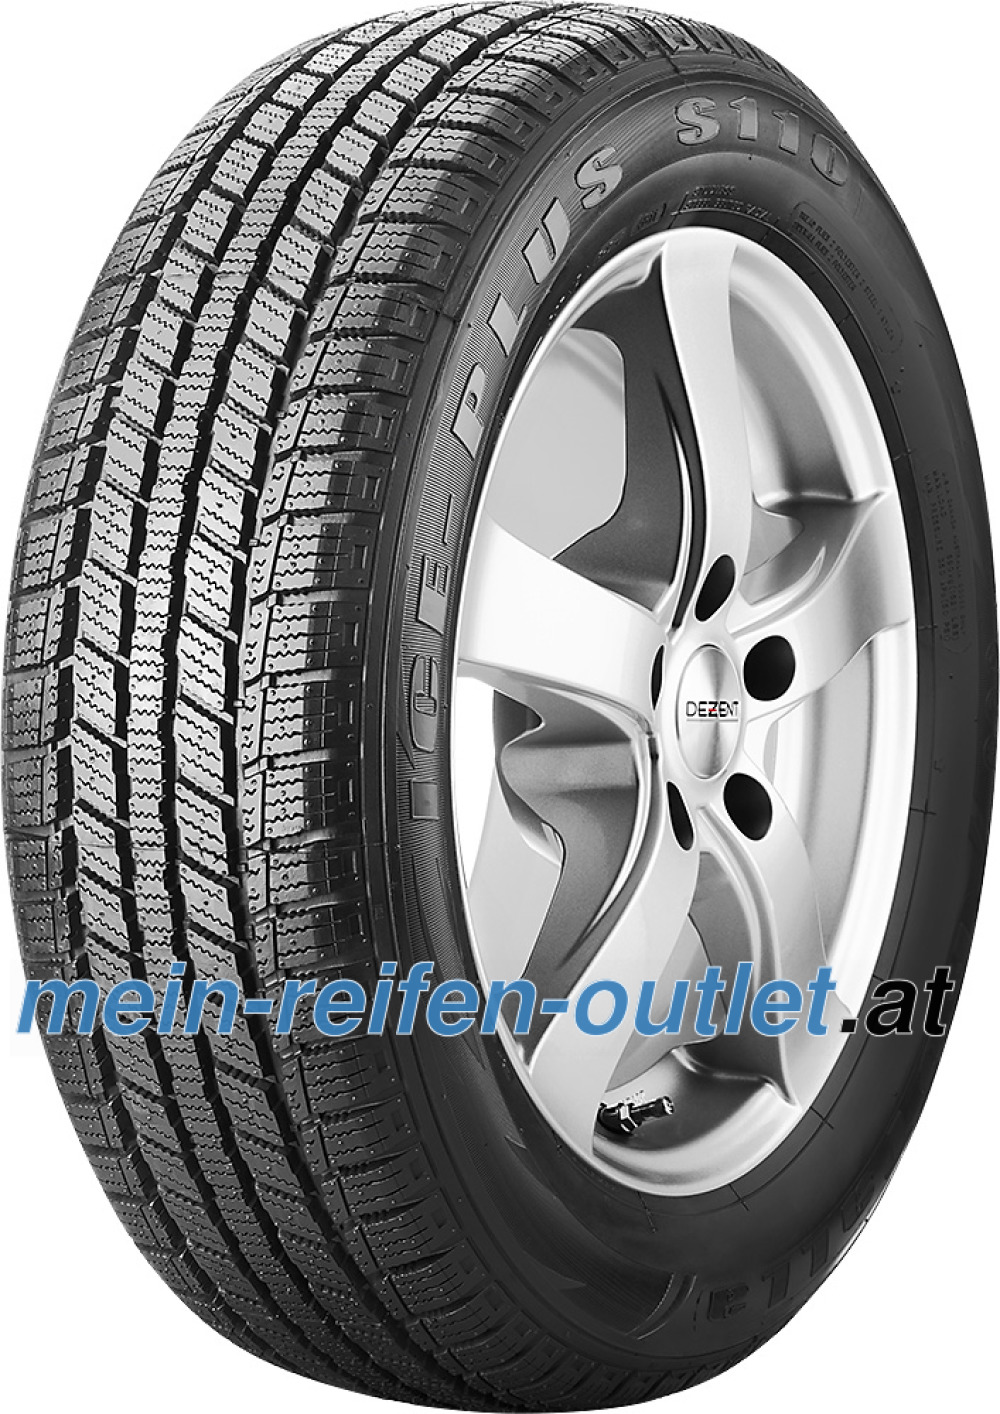 Rotalla Ice-Plus S110 ( 165/65 R14 79T )